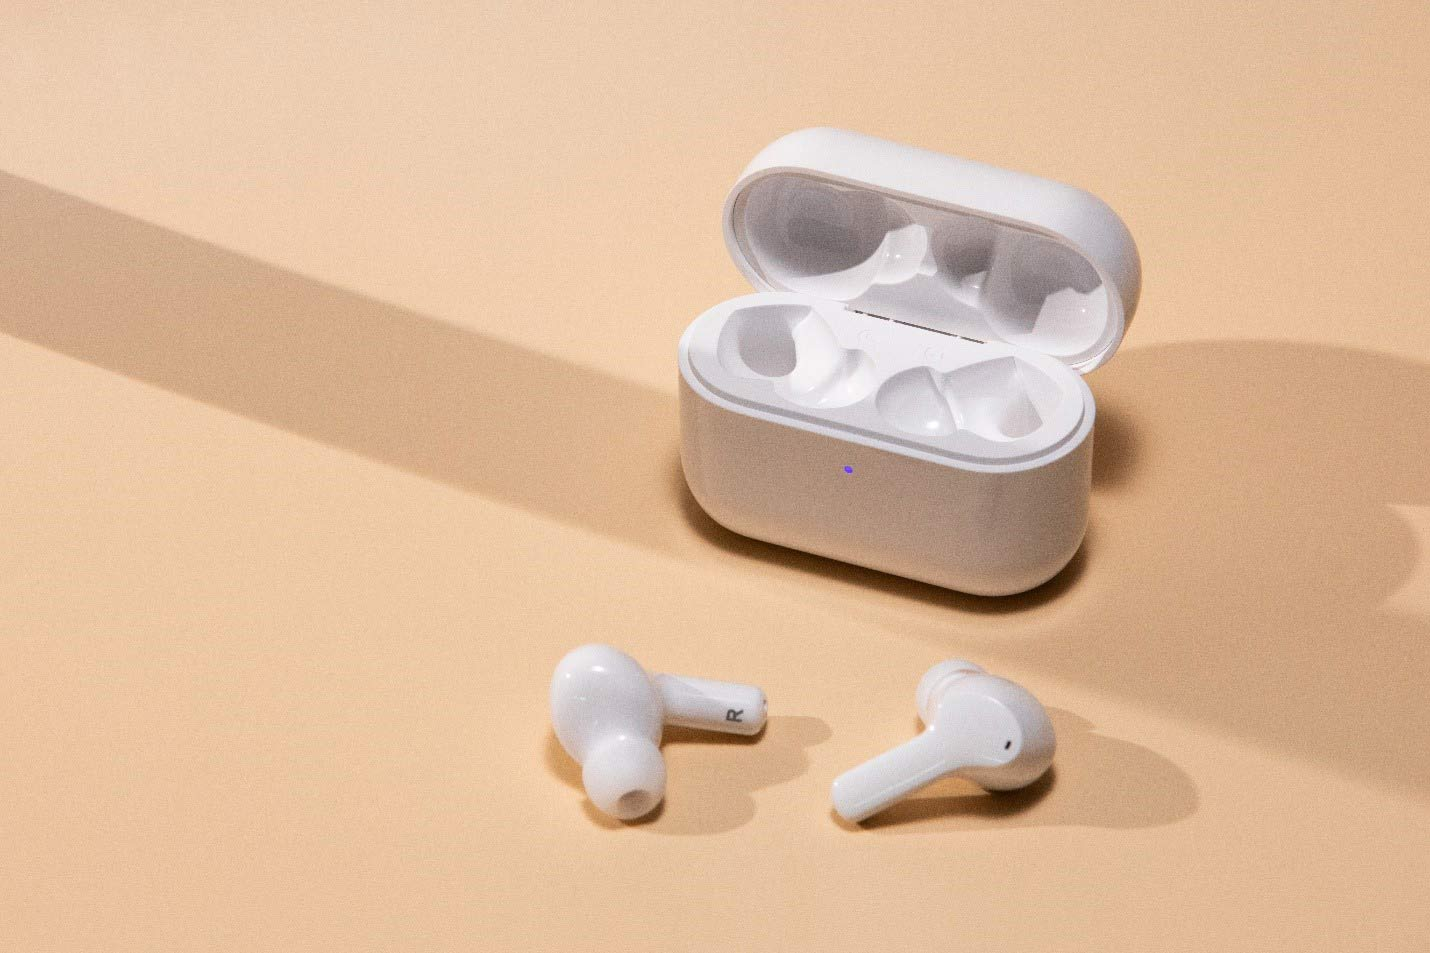 HONOR Choice TWS Earbuds